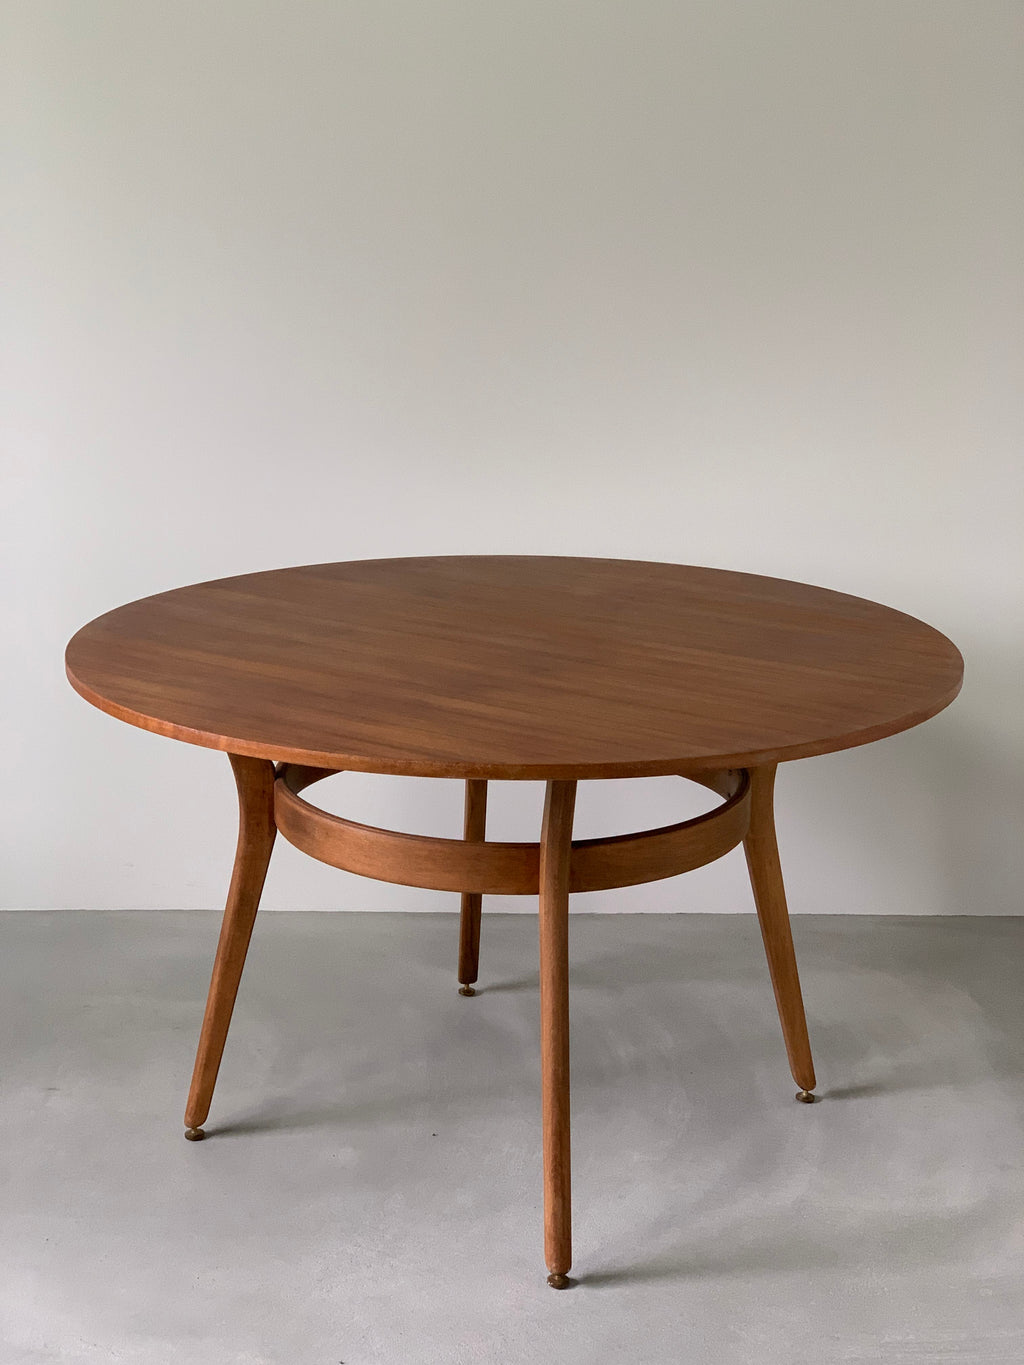 ジープラン ラウンドテーブル / g-plan round dining table 'e gomme librenza' #0074